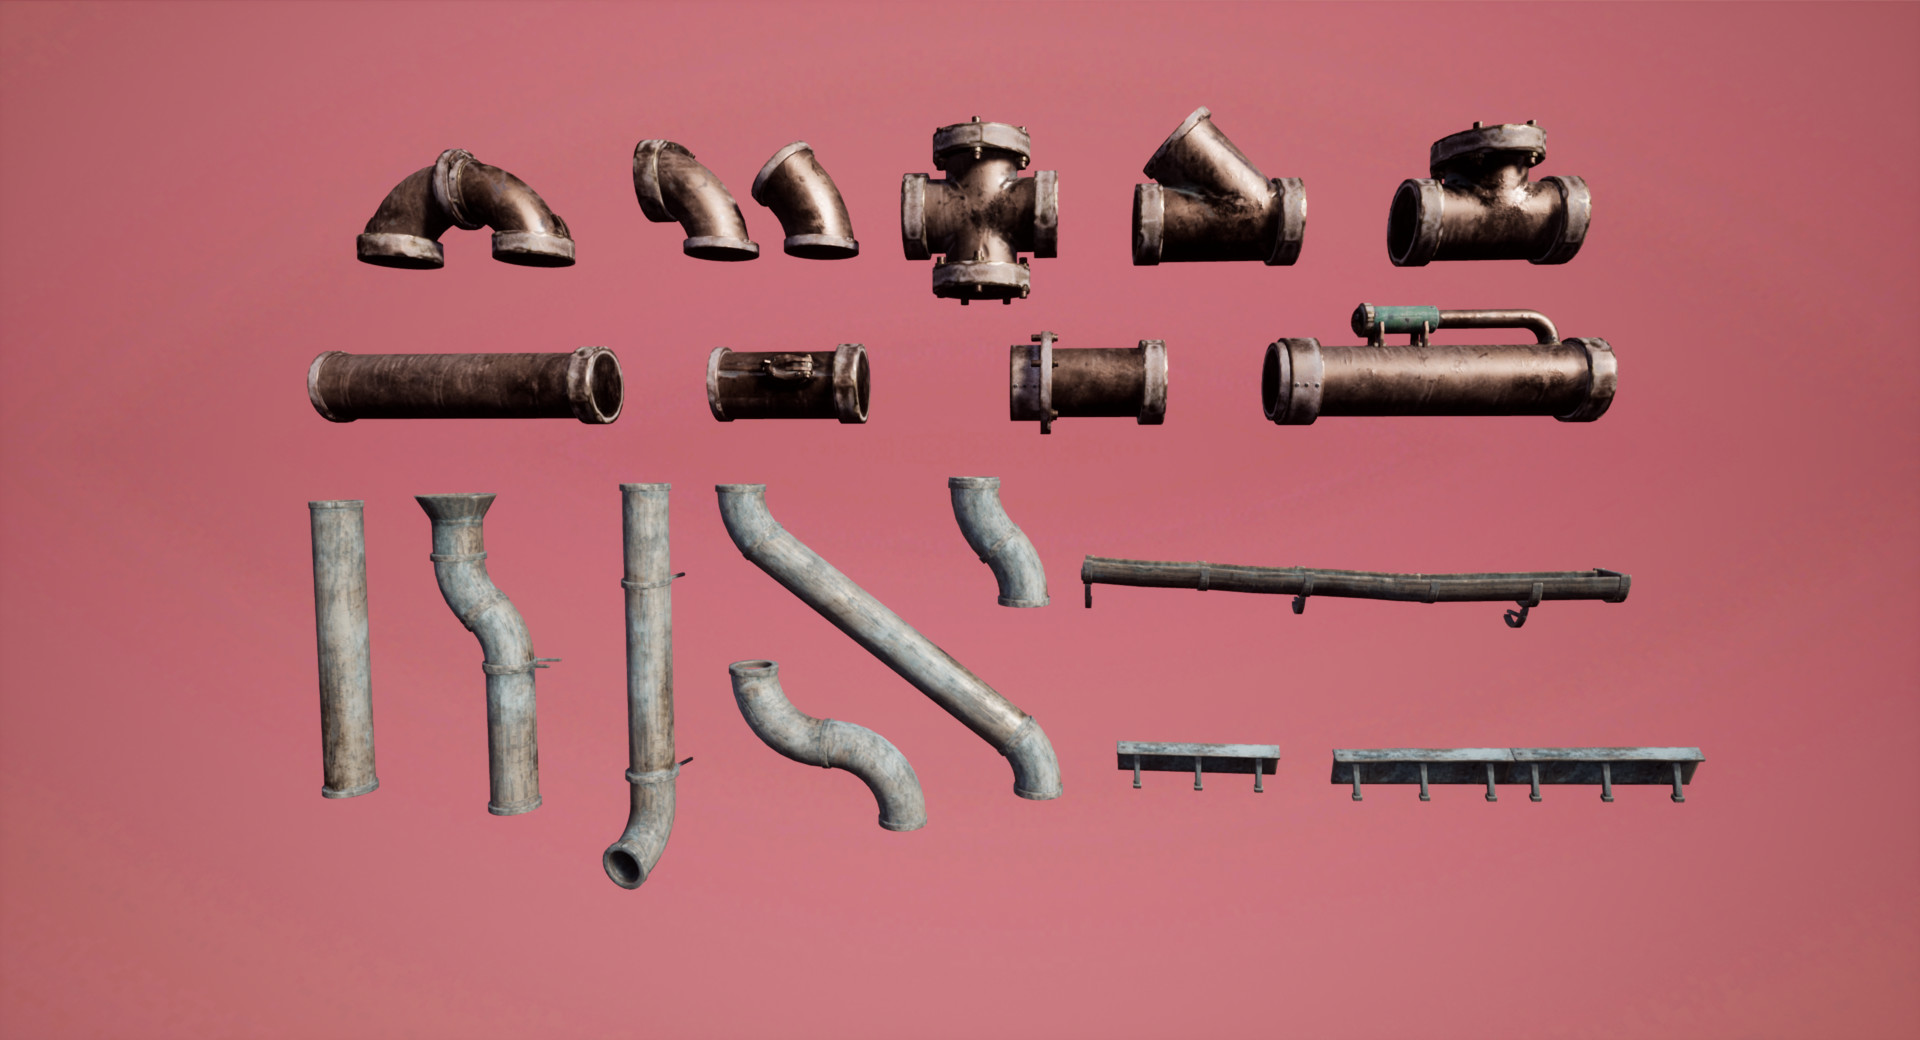 Olle norling assets 3